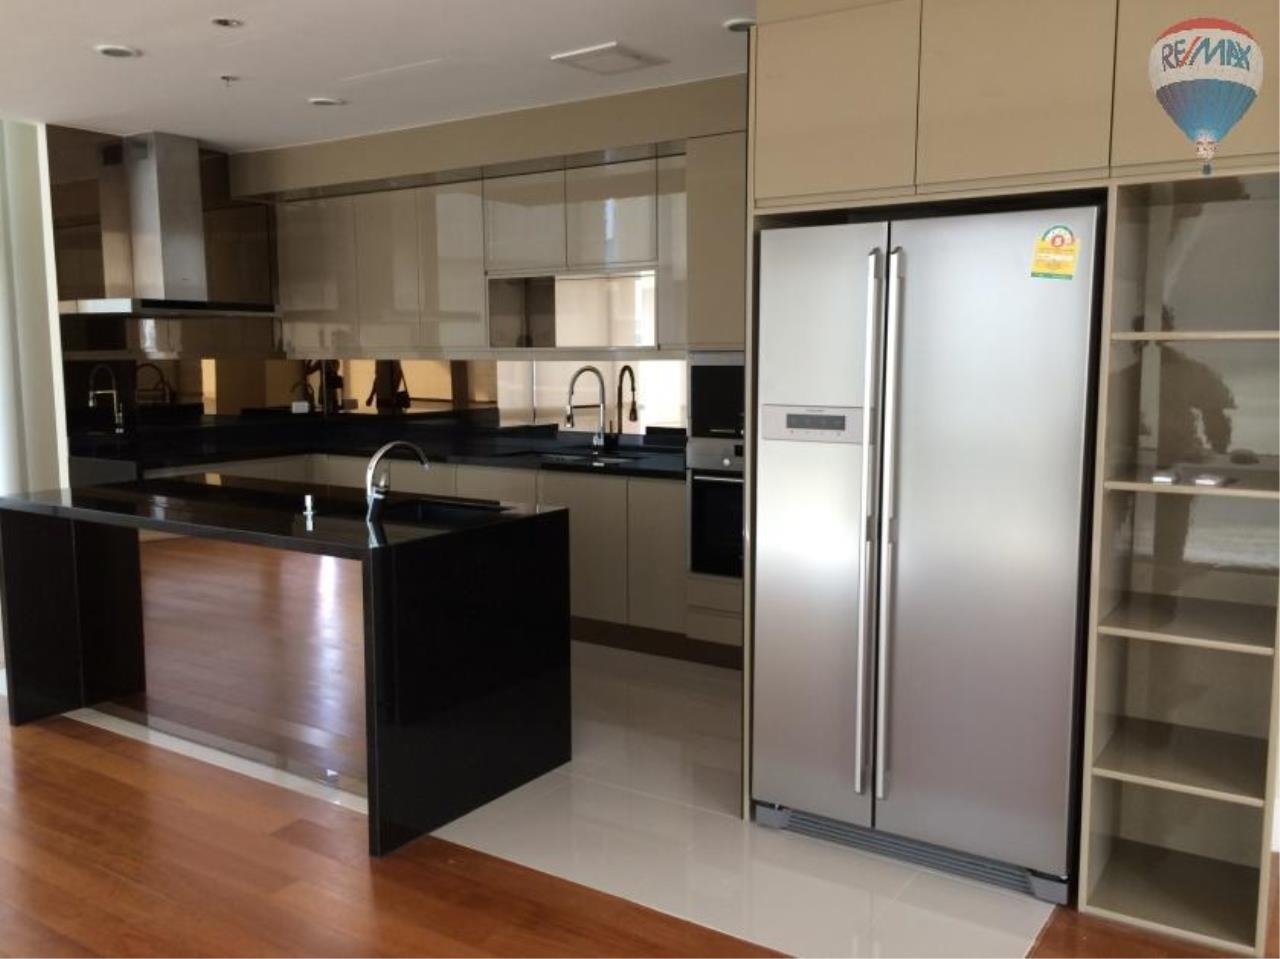 RE/MAX Properties Agency's 6 Bedroom 365 sq.m. for Rent at Bright Sukhumvit 24 14